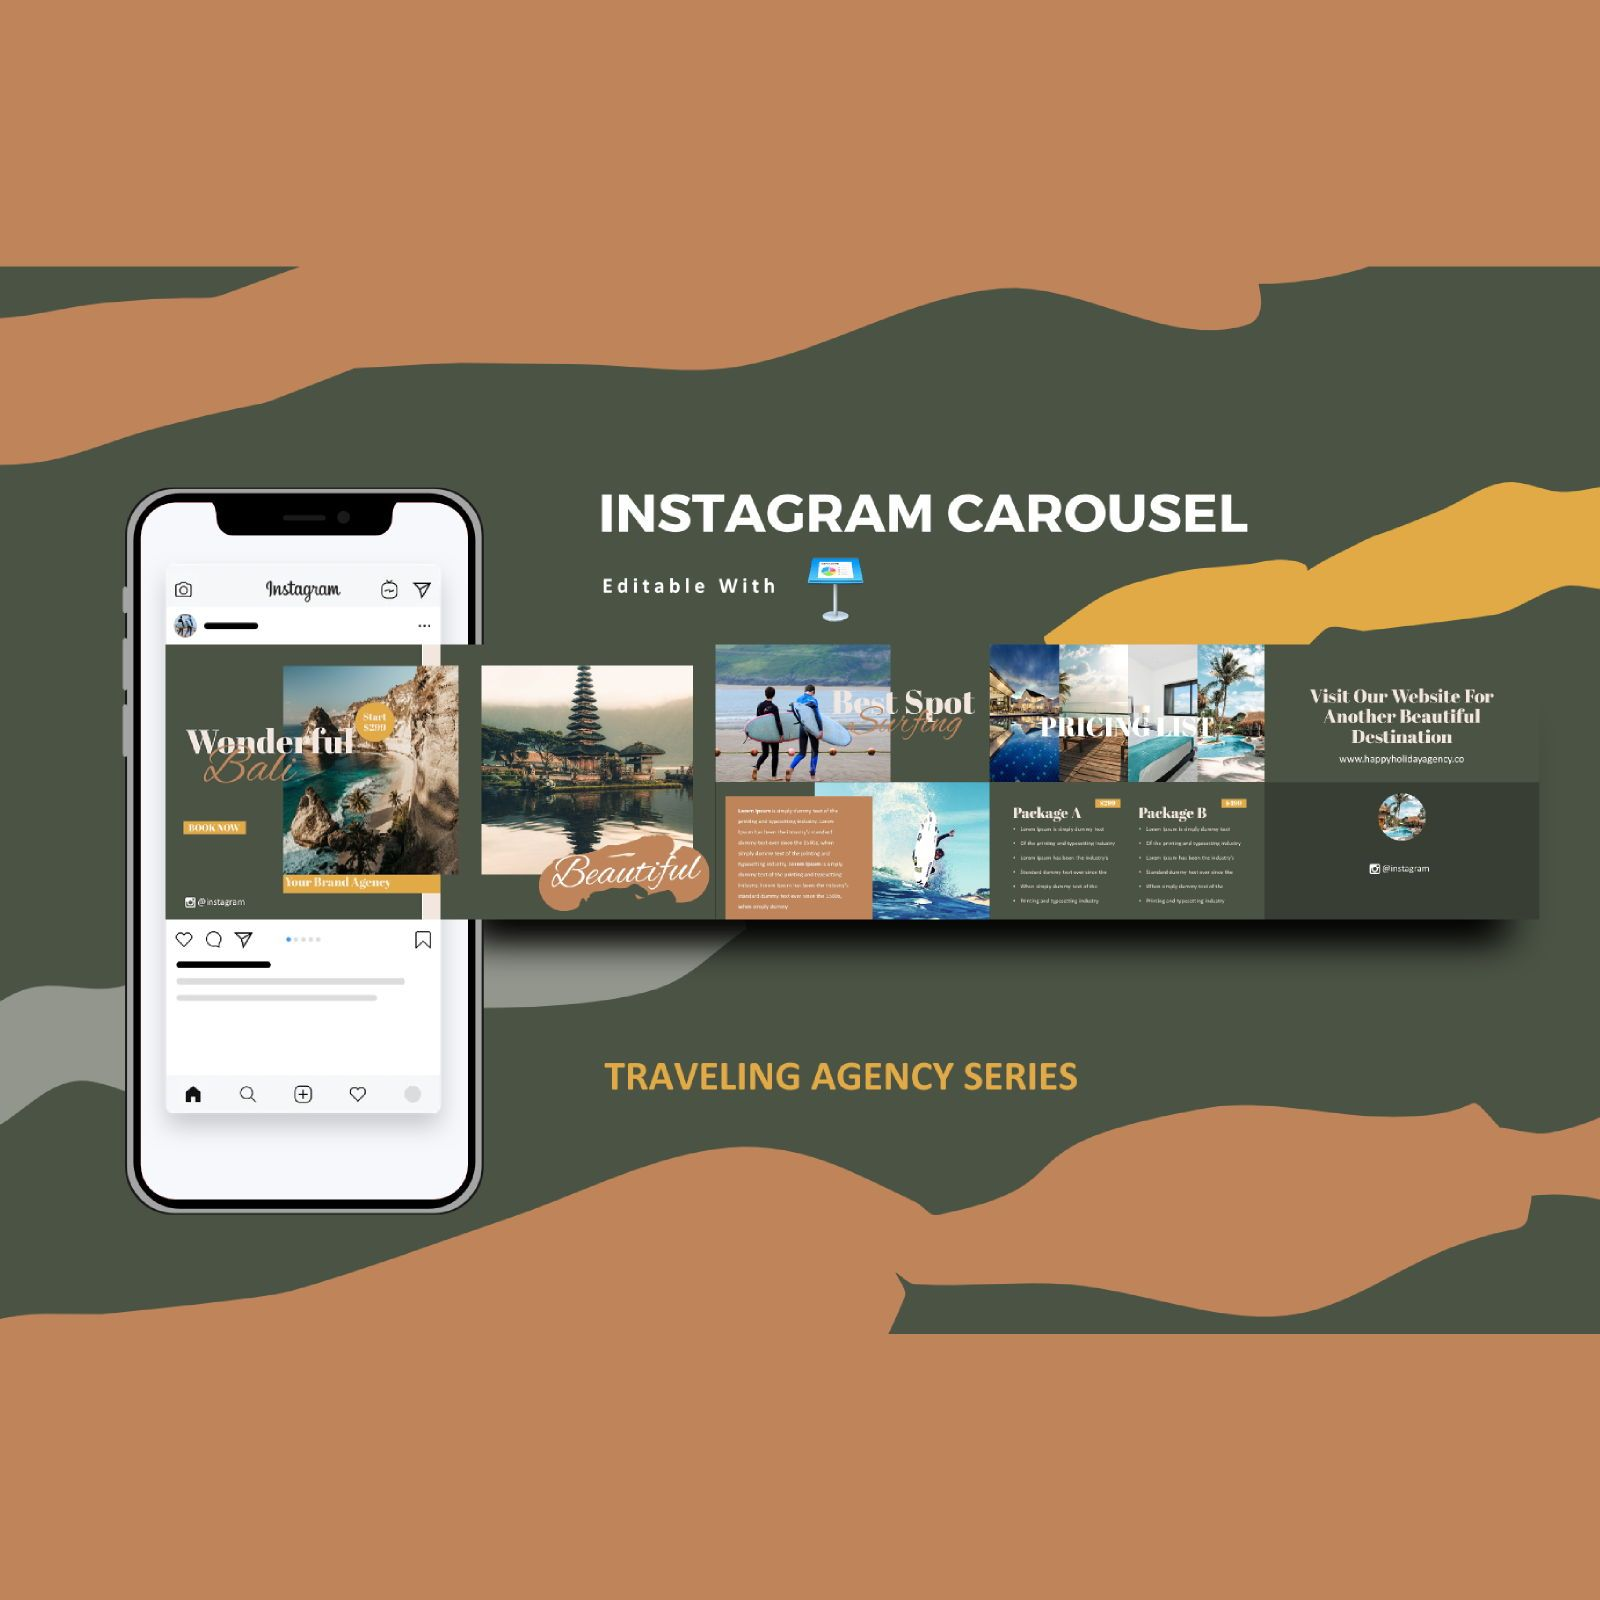 Traveling agency service instagram carousel keynote template, 08371, Business Models — PoweredTemplate.com